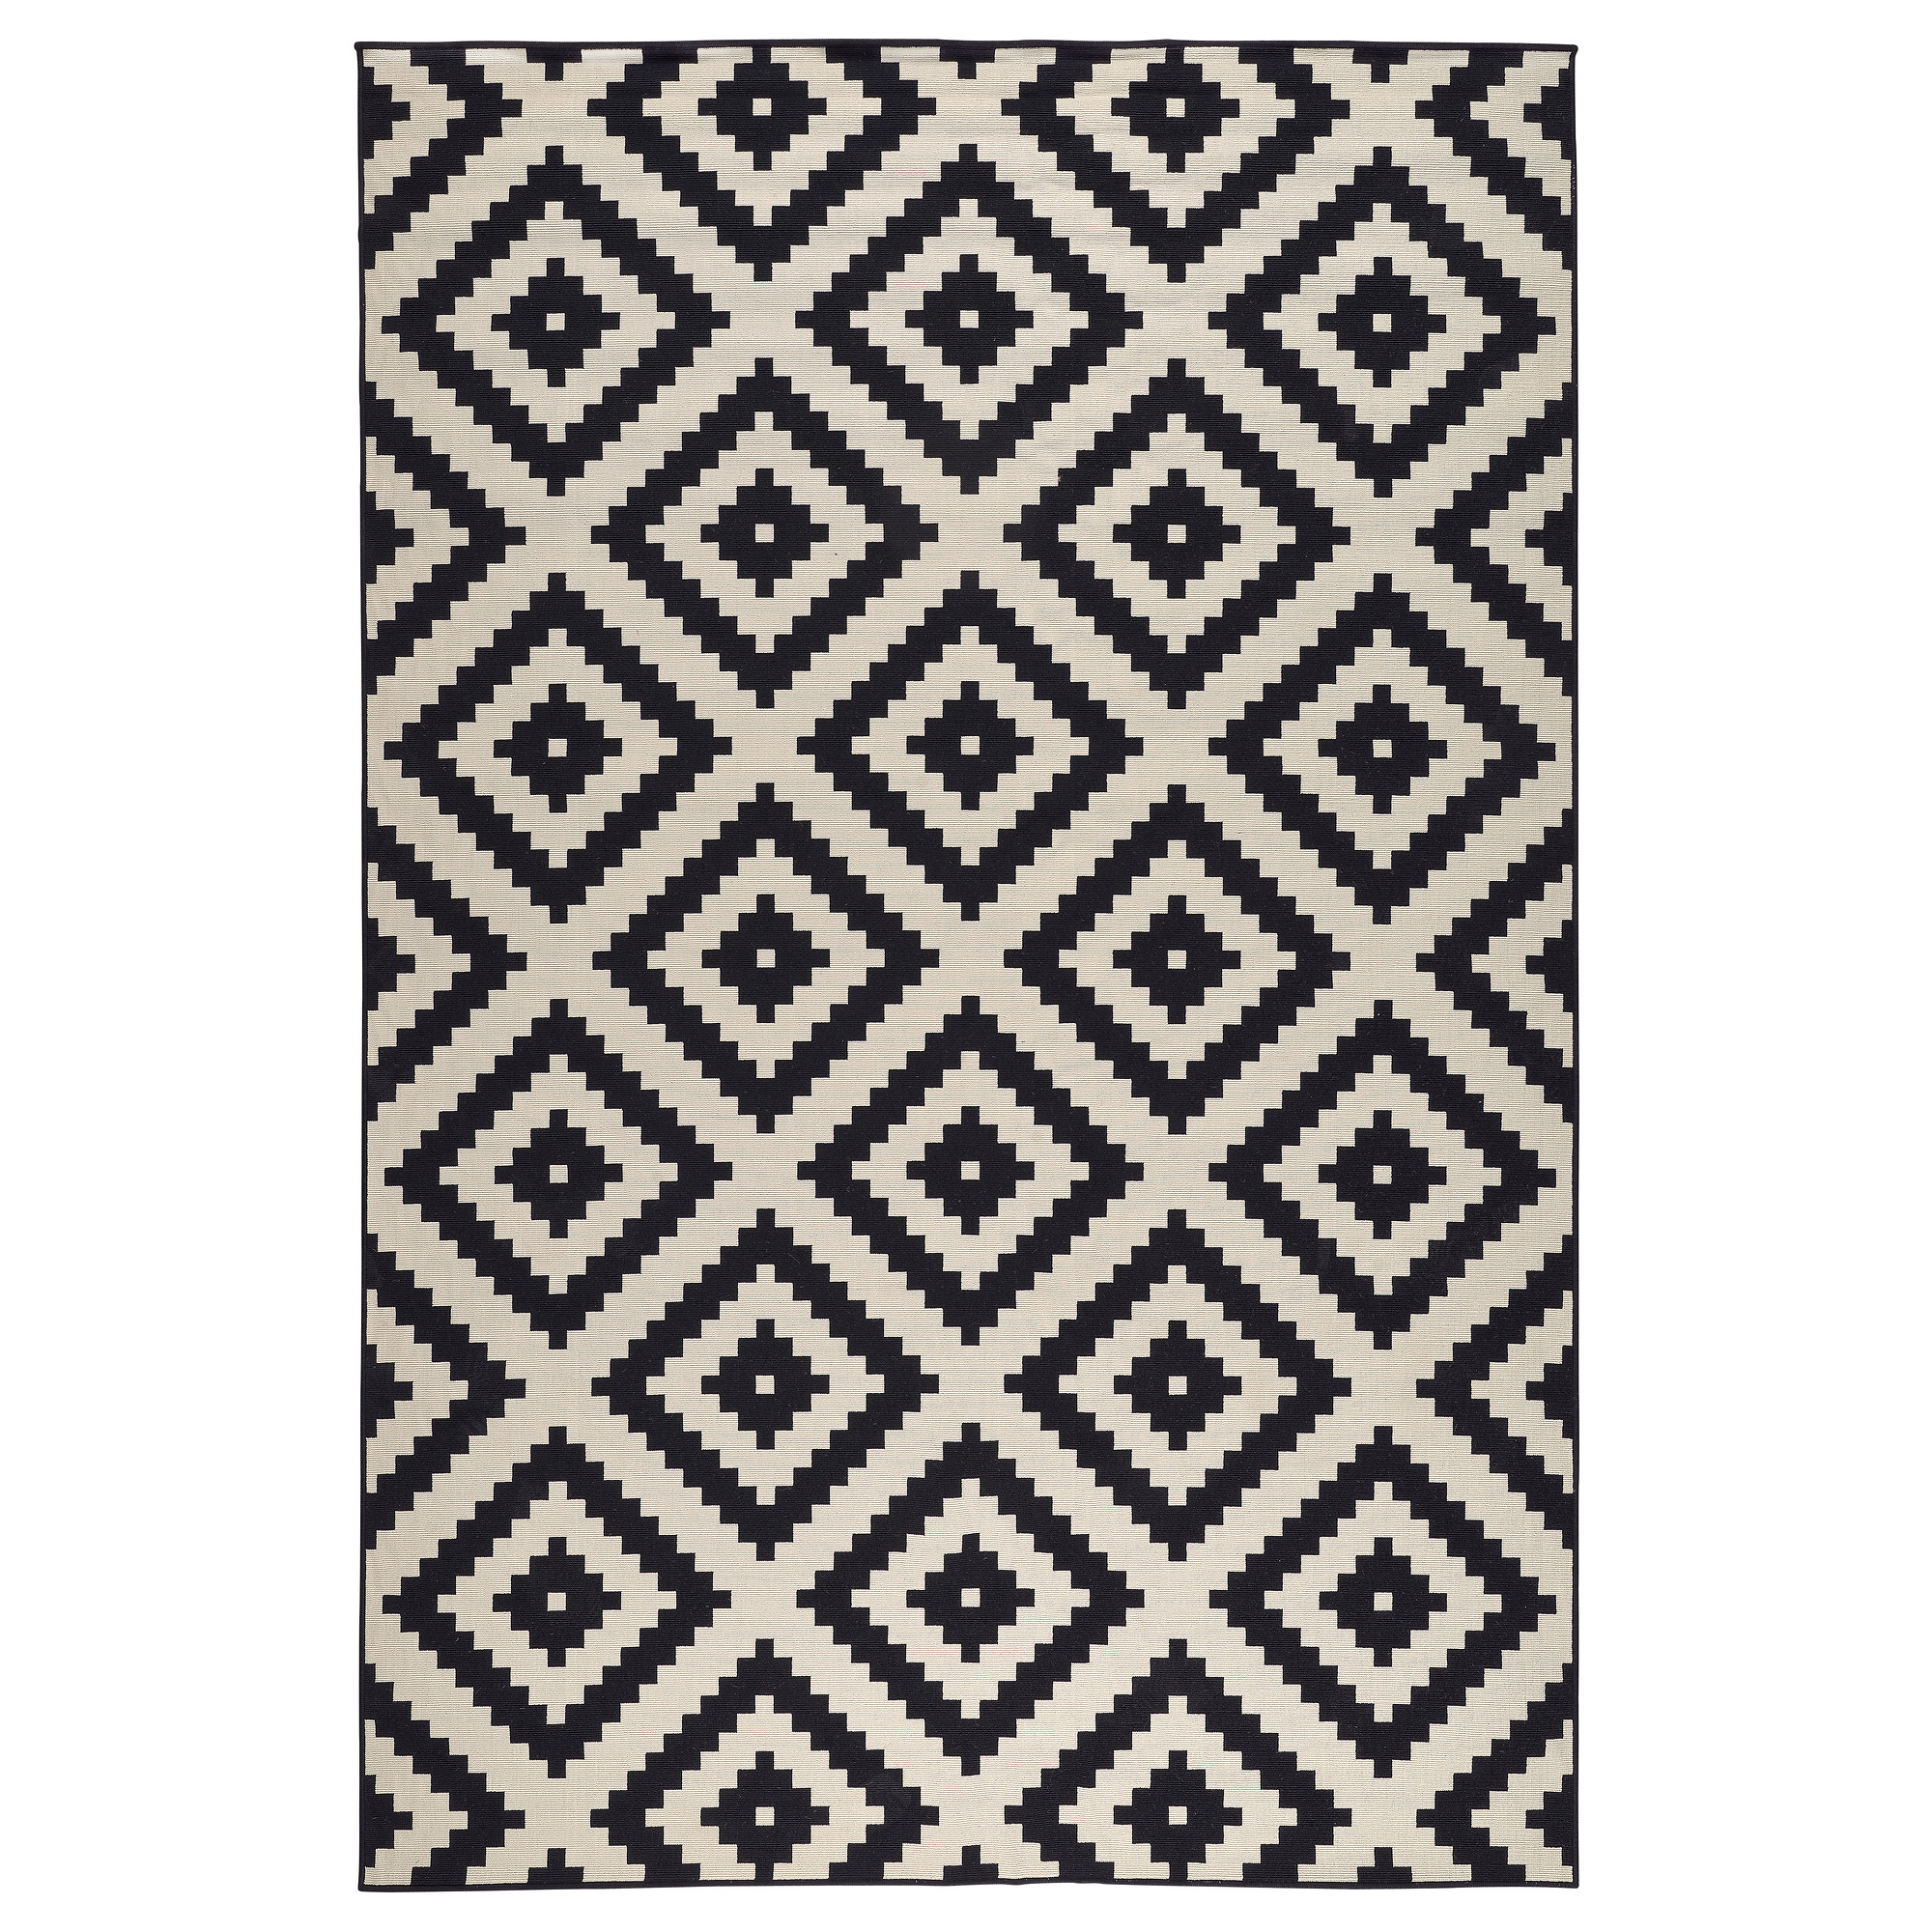 Superb Tapis Ikea Grande Taille #6: 2017-08-25T05:00-07:00 ...